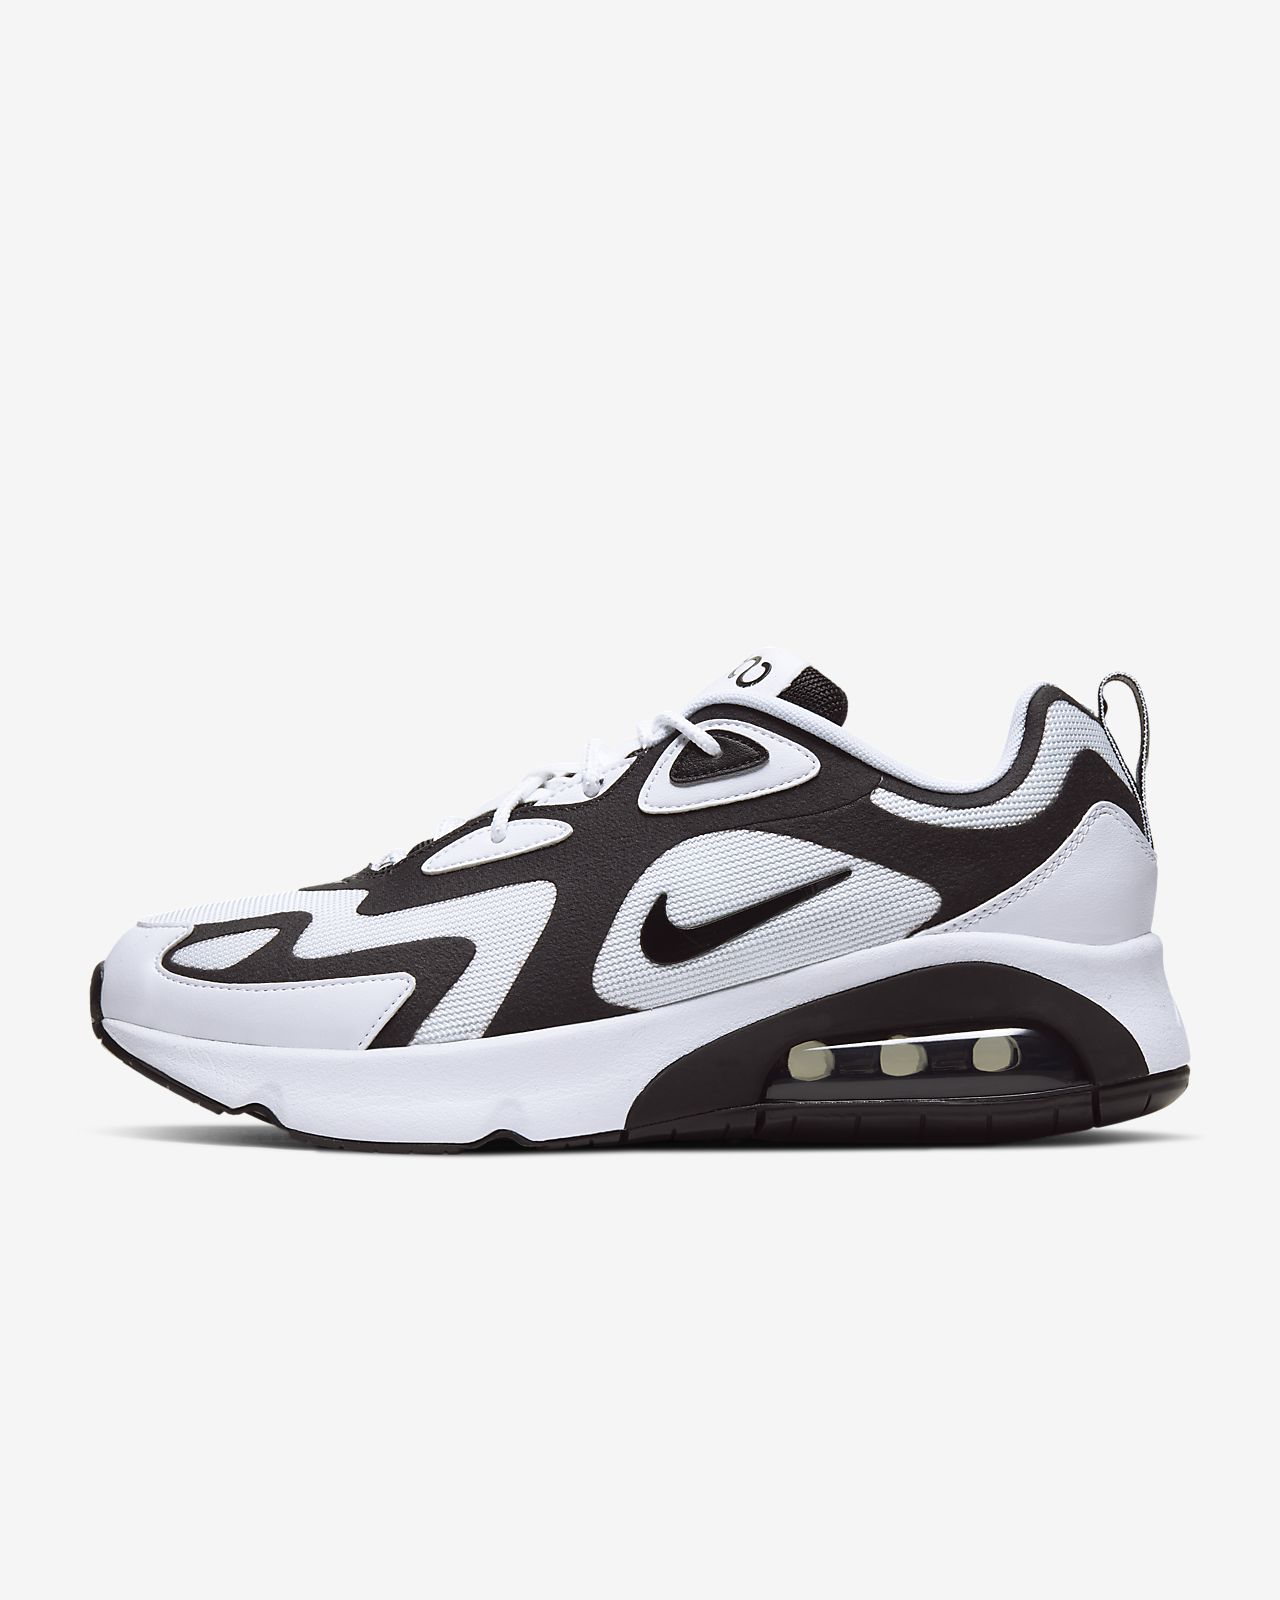 Choose your style from Nike Air Max Nike Shoes Nike Air Max